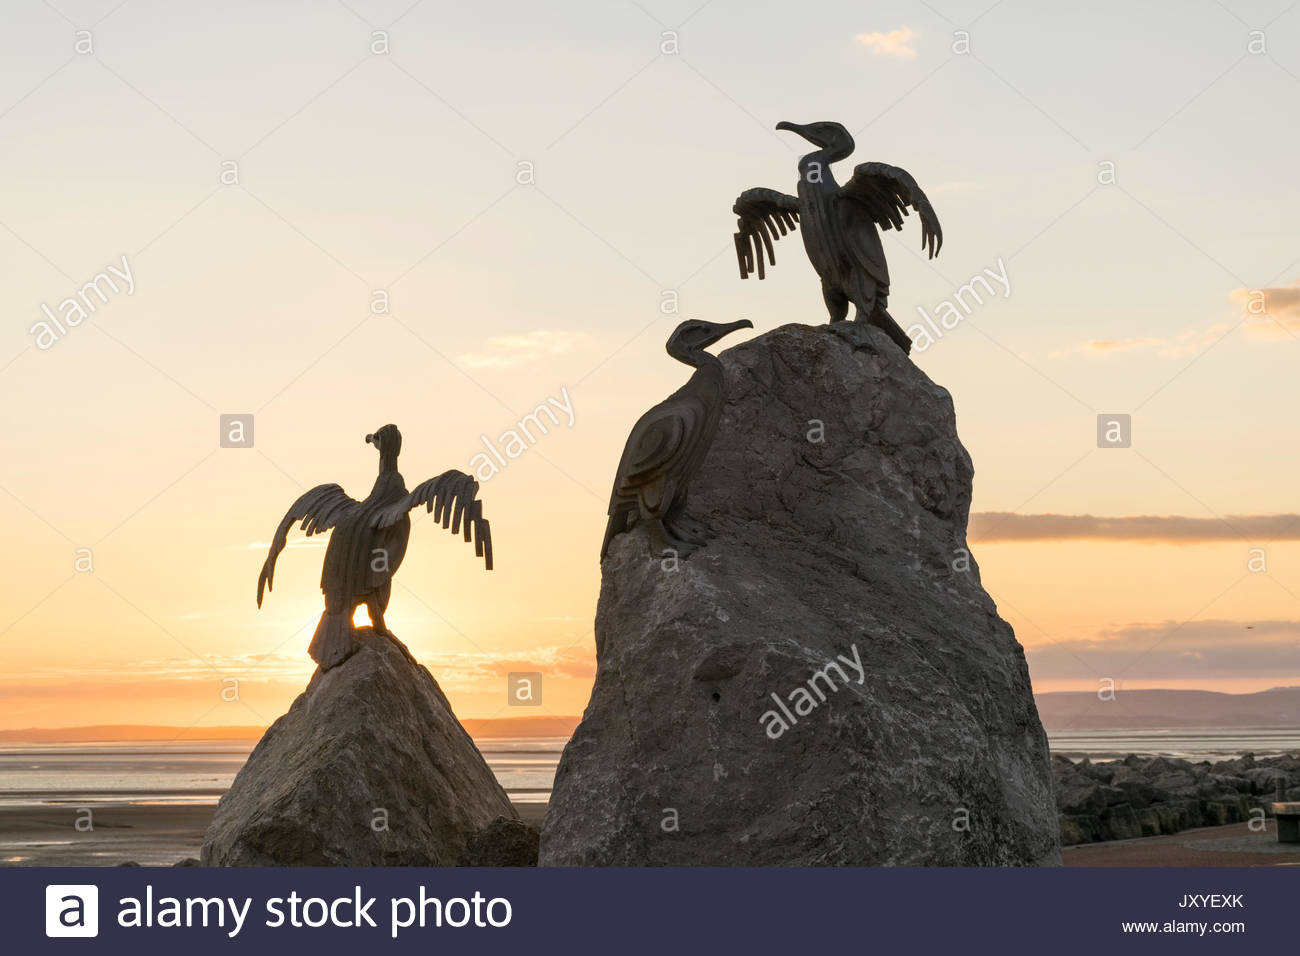 Sculpture of cormorants on Morecambe Promenade at sunset, part of the regeneration of the seaside resort - Stock Image